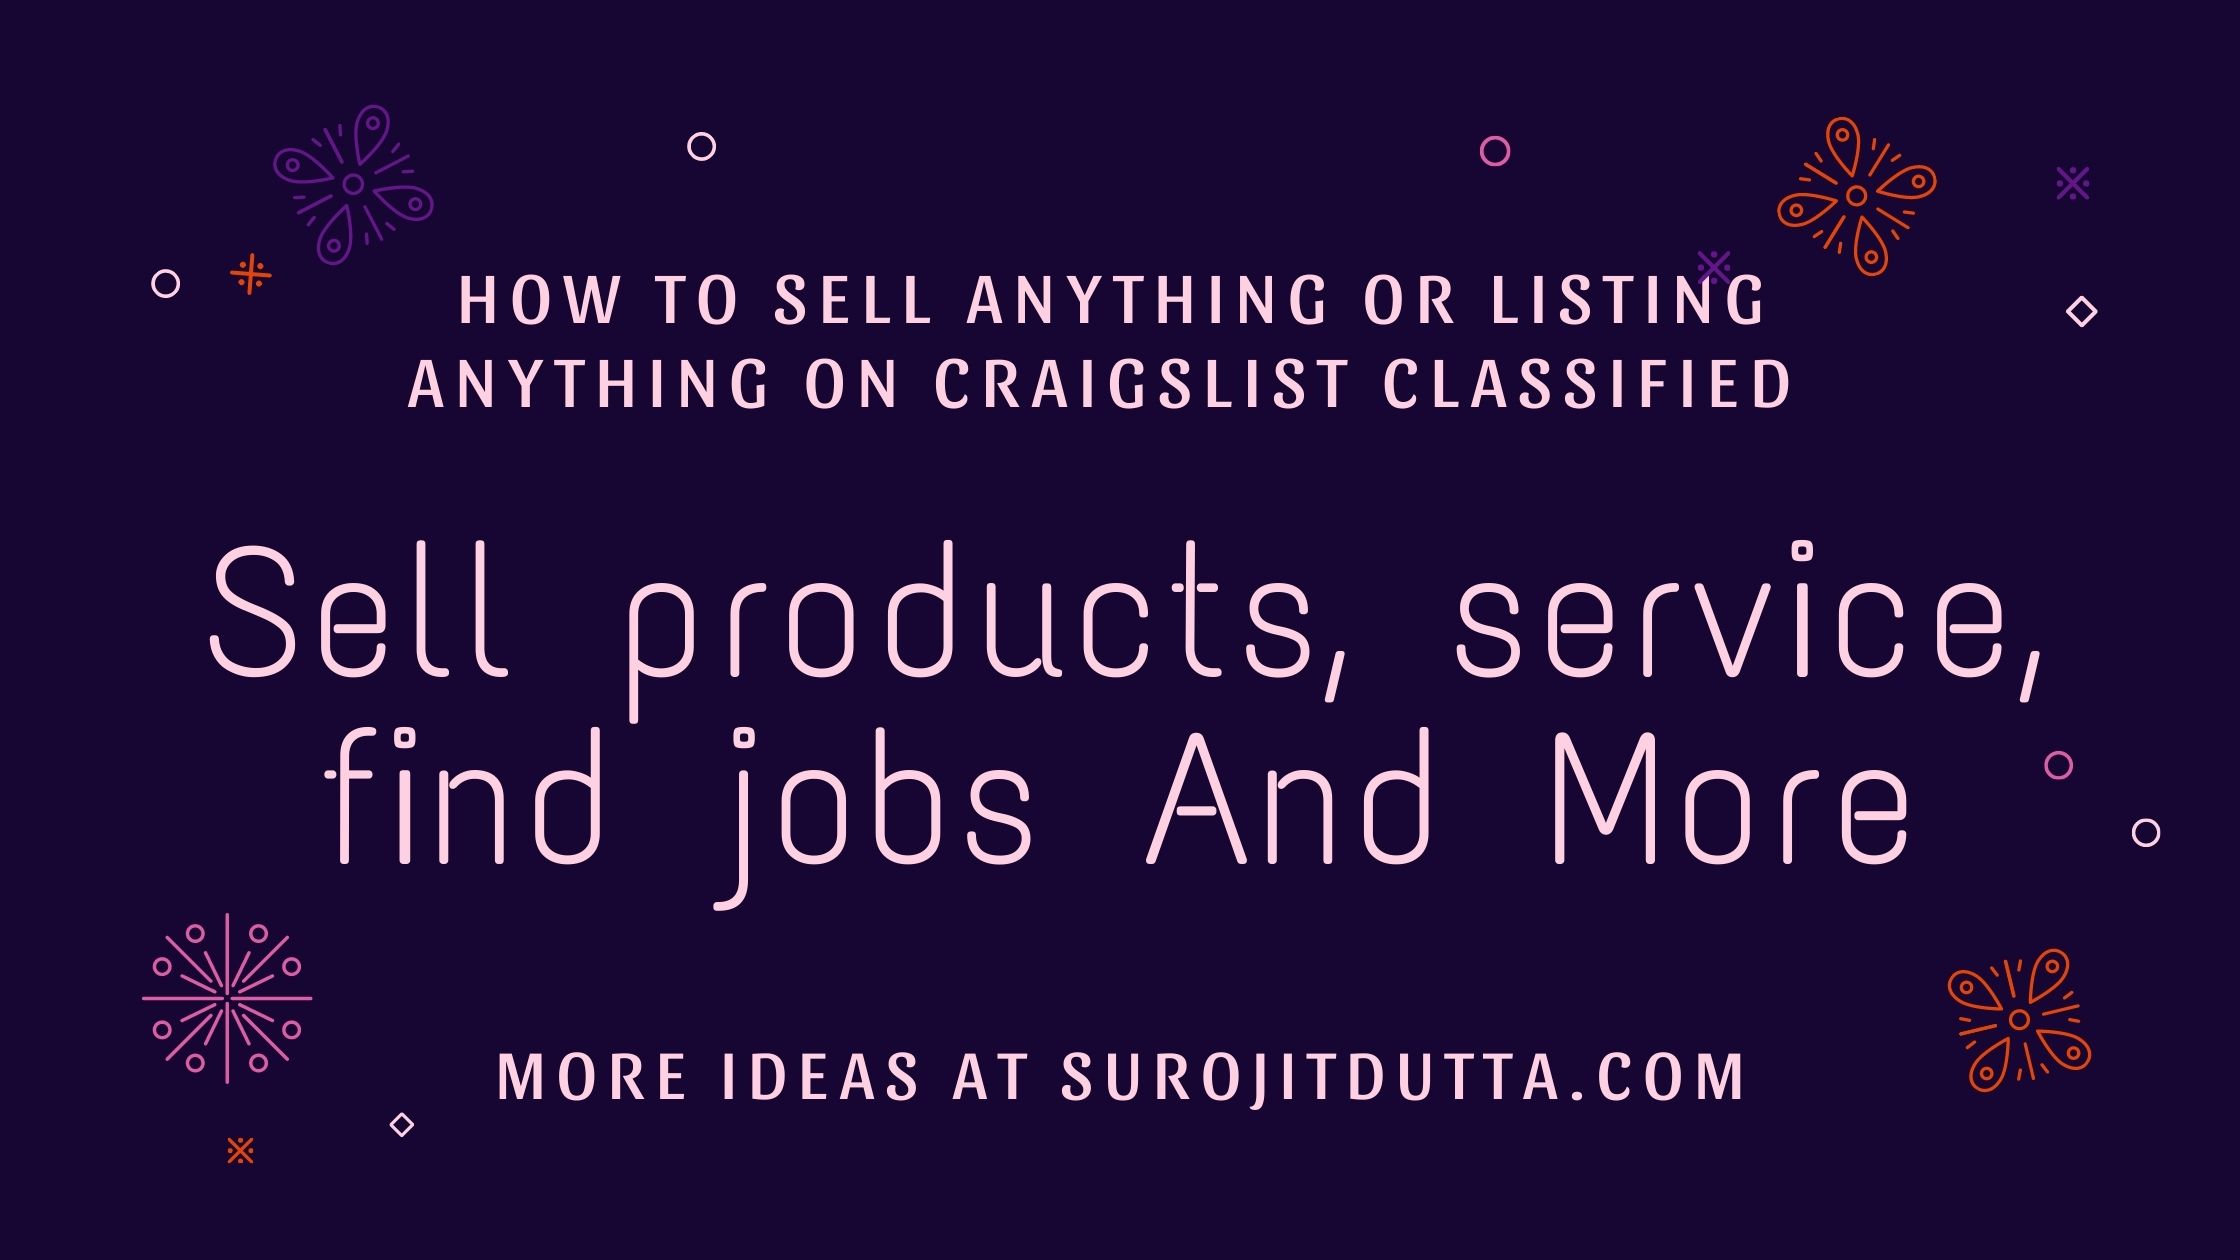 Craigslist Classified Website Listing Details